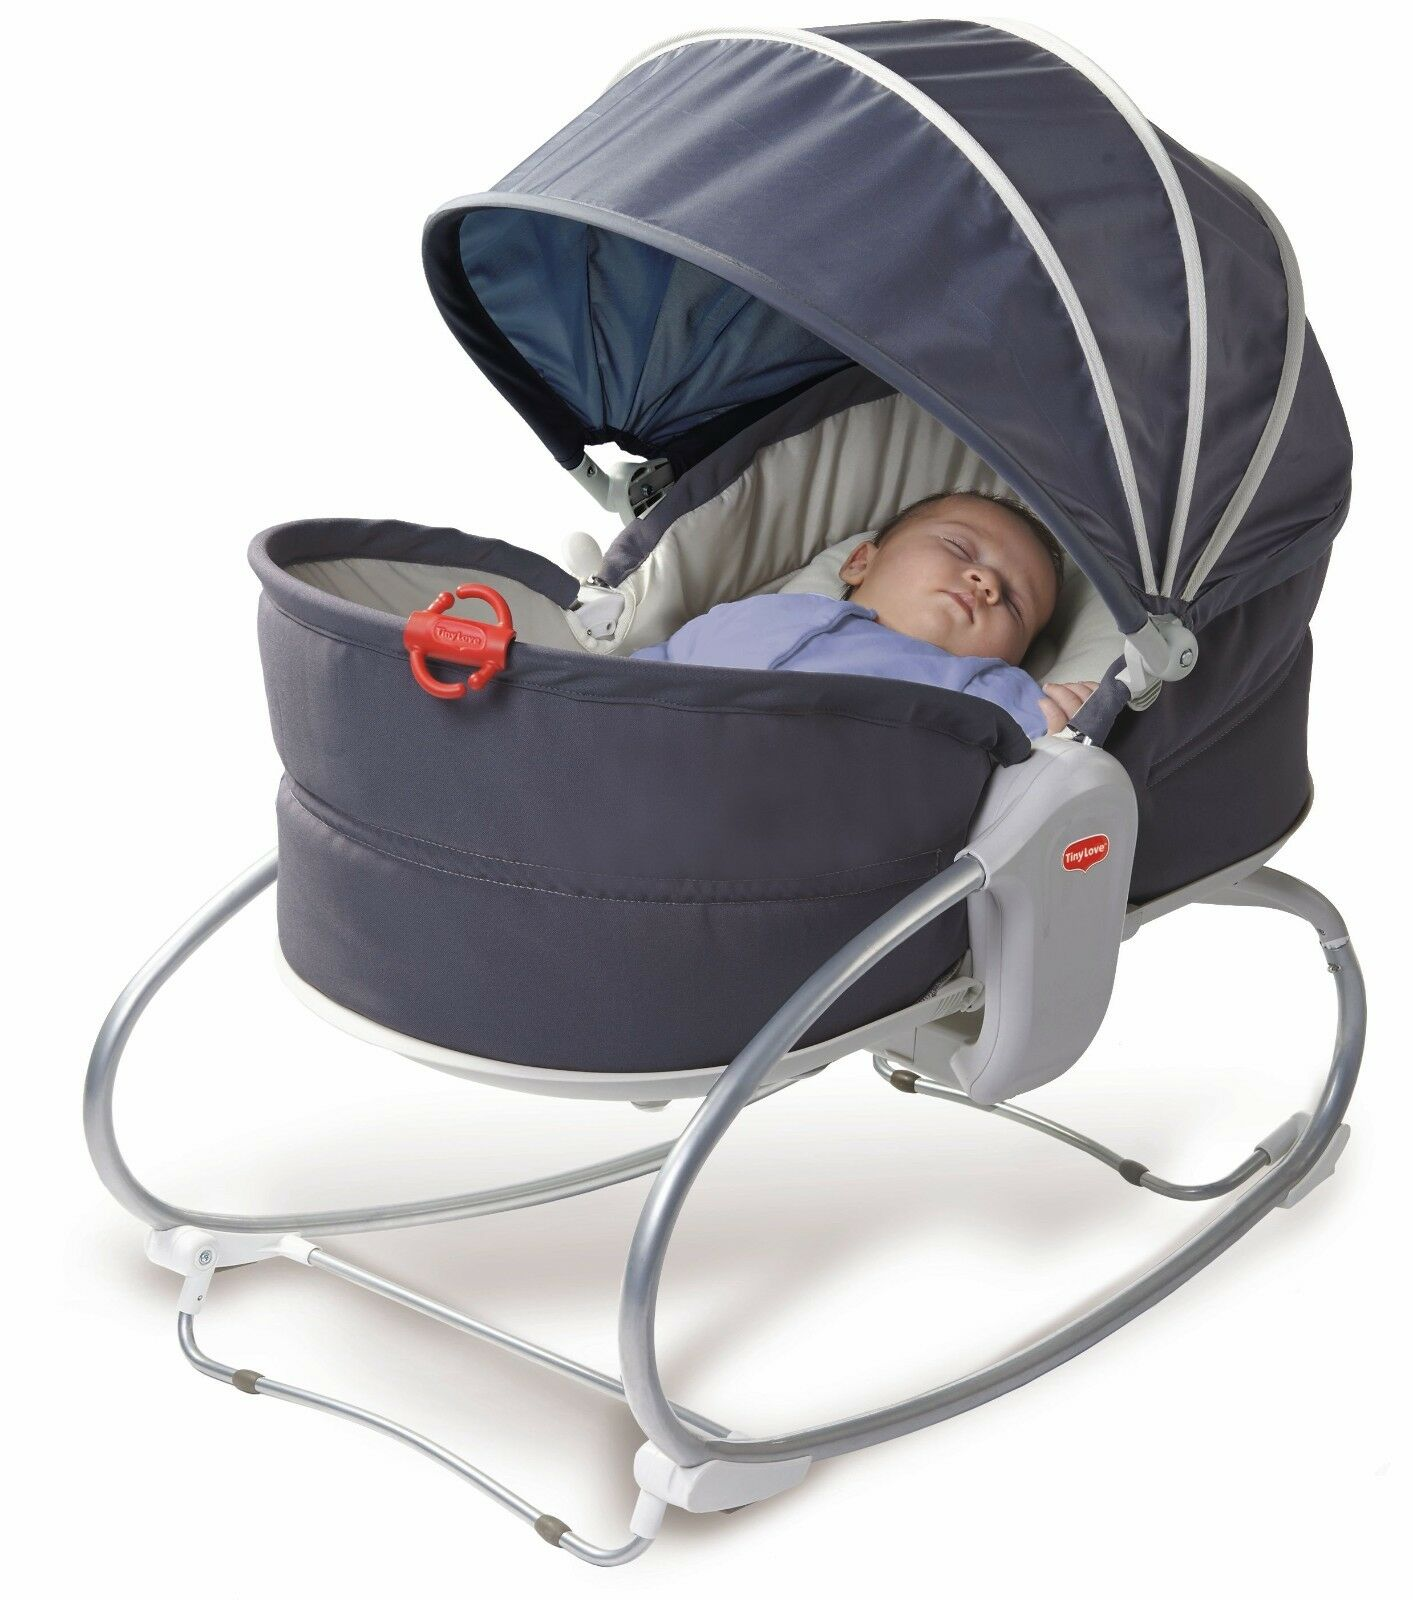 Baby Play Chair Tiny Love Baby Cozy Rocker Napper Seat Travel Bassinet